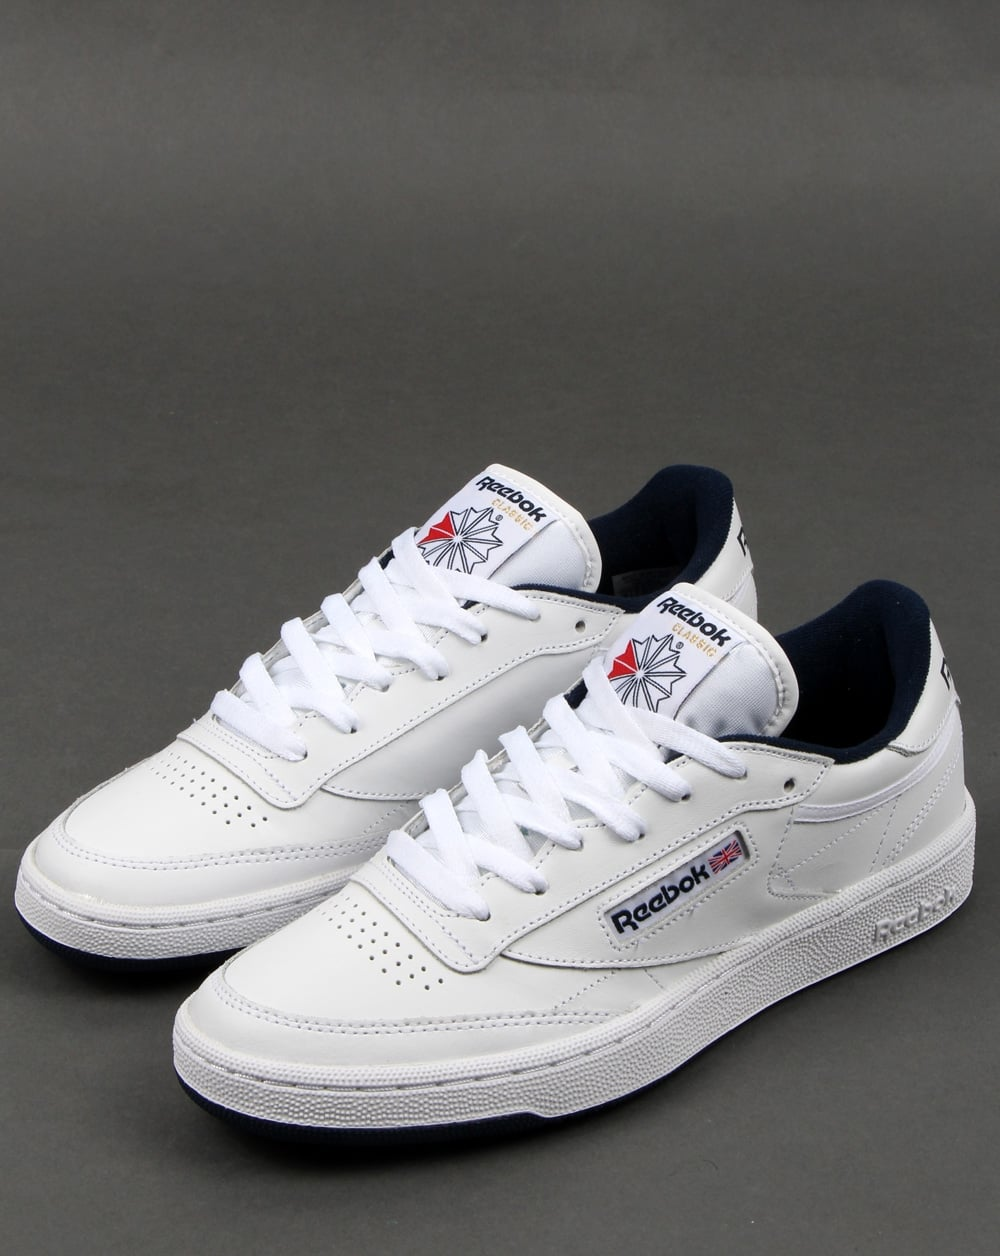 reebok club c whitenavy tennis shoes